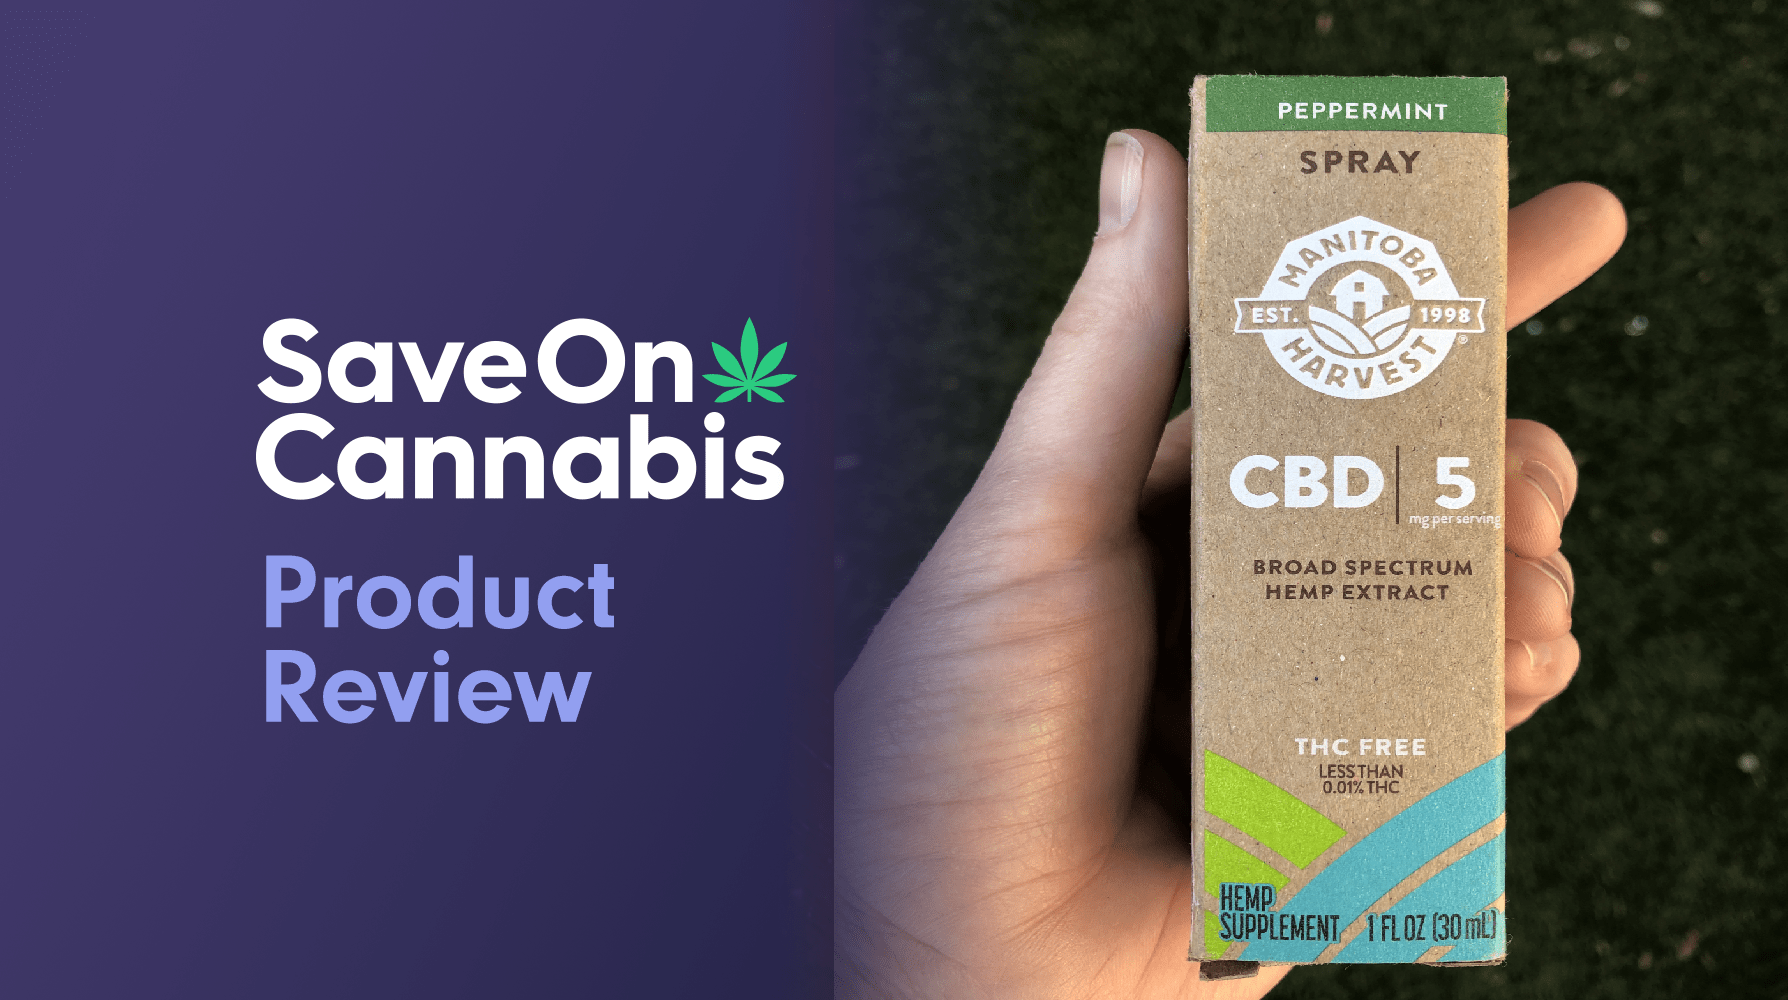 manitoba harvest cbd peppermint spray save on cannabis website